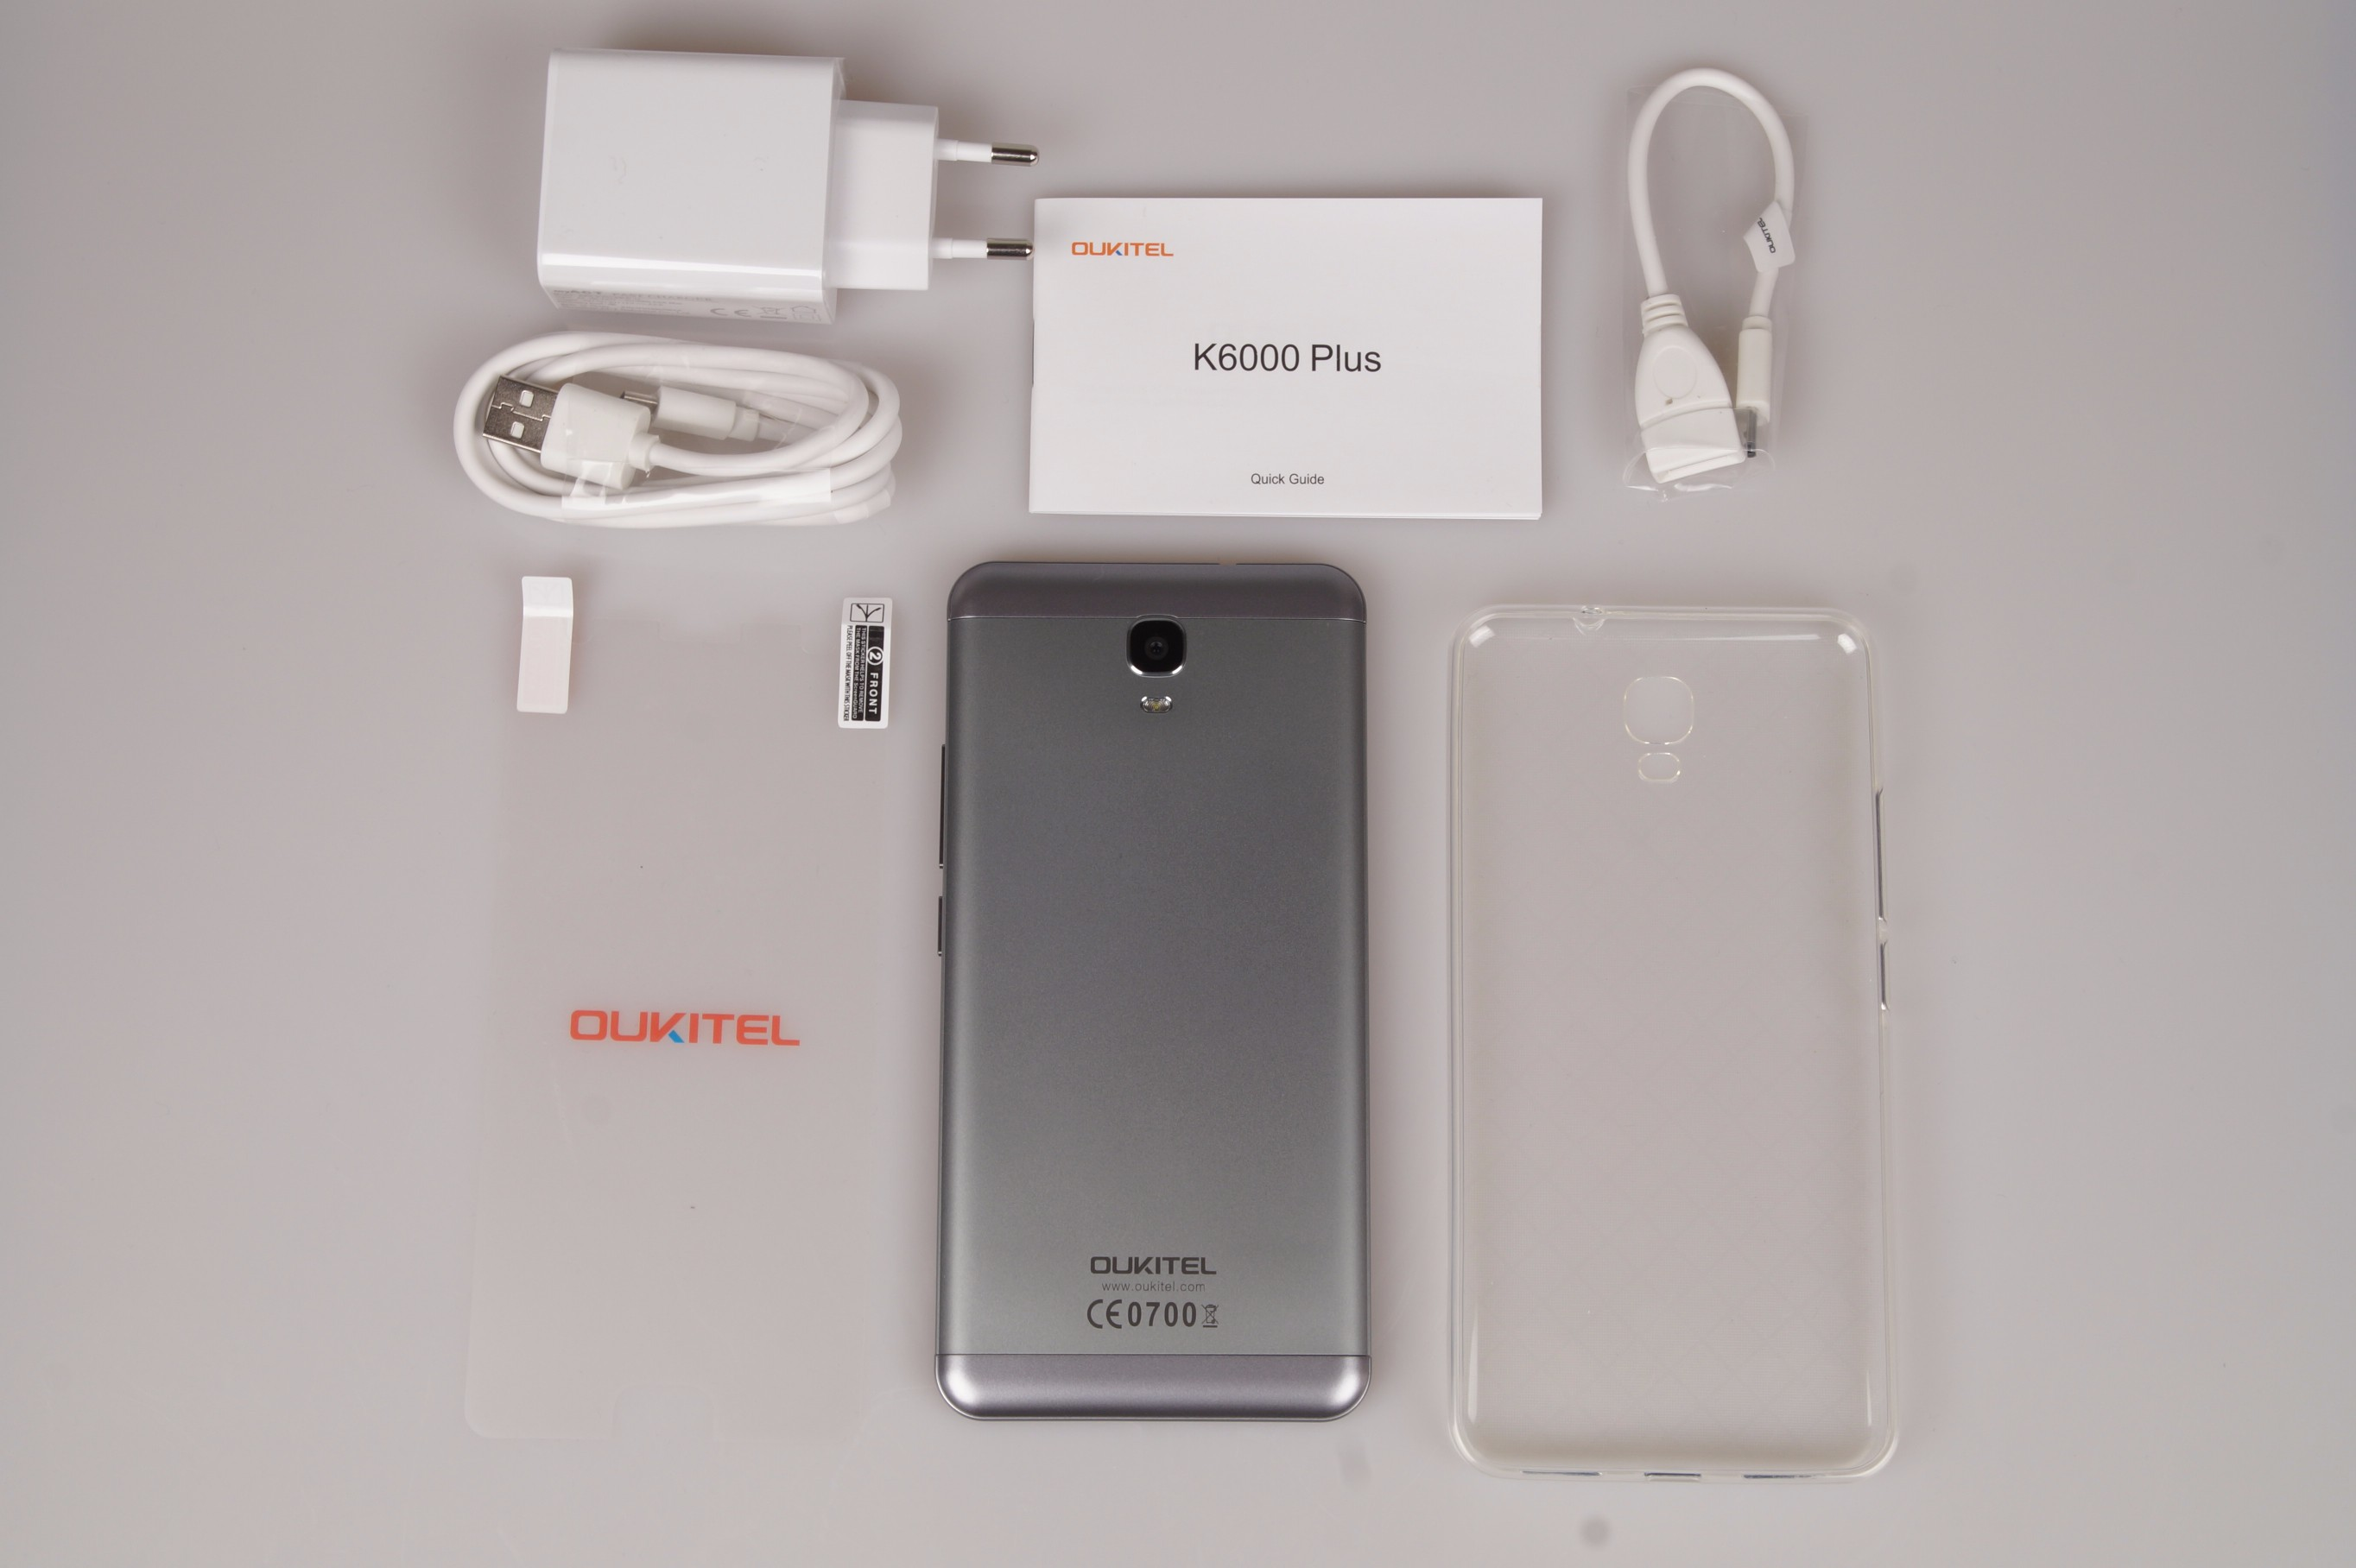 Oukitel K6000 Plus scope of delivery